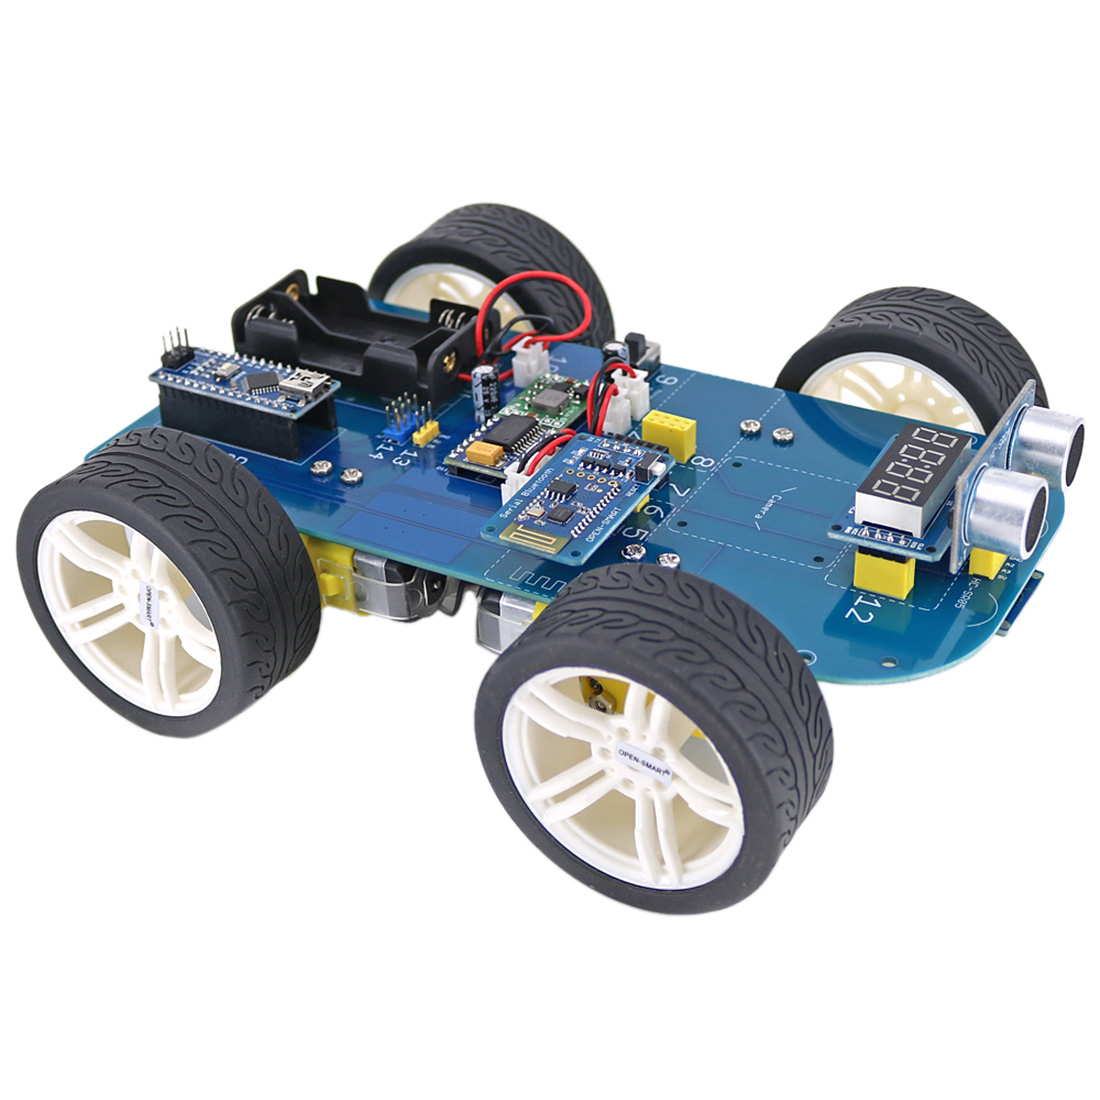 2019 High-tech Programmable Boys 4WD Bluetooth Smart Car Kit Ultrasonic Display And Obstacle Avoidance Kit +Tutorial For Arduino